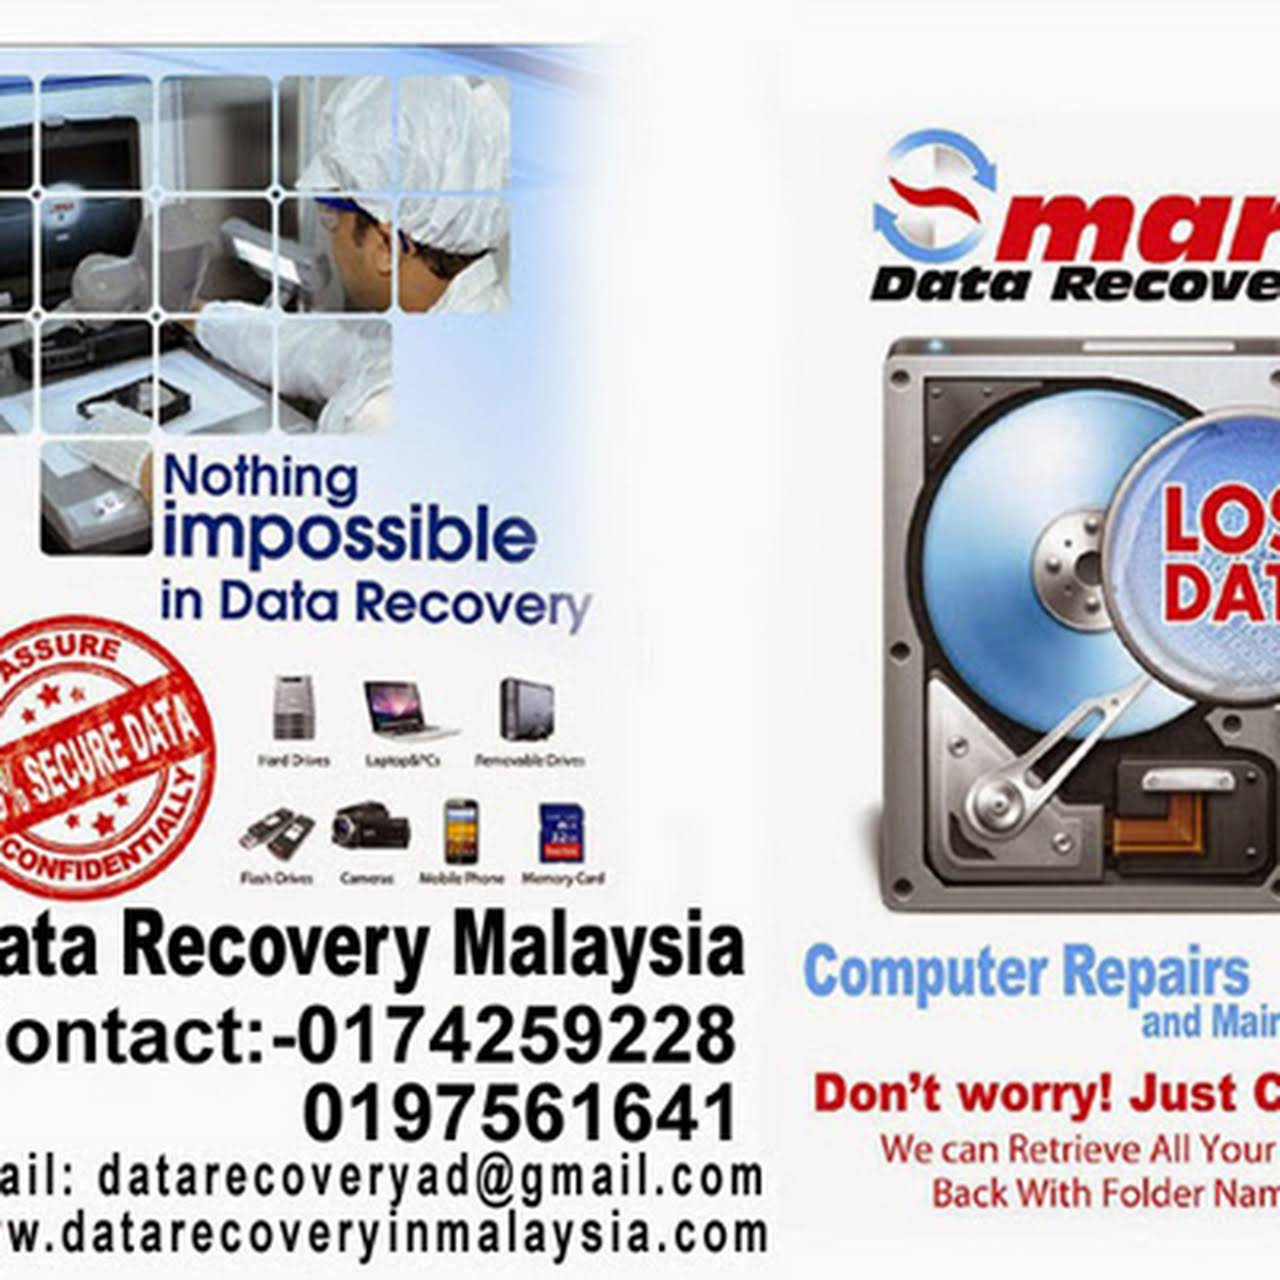 SMART DATA RECOVERY MALAYSIA - Data Recovery Services